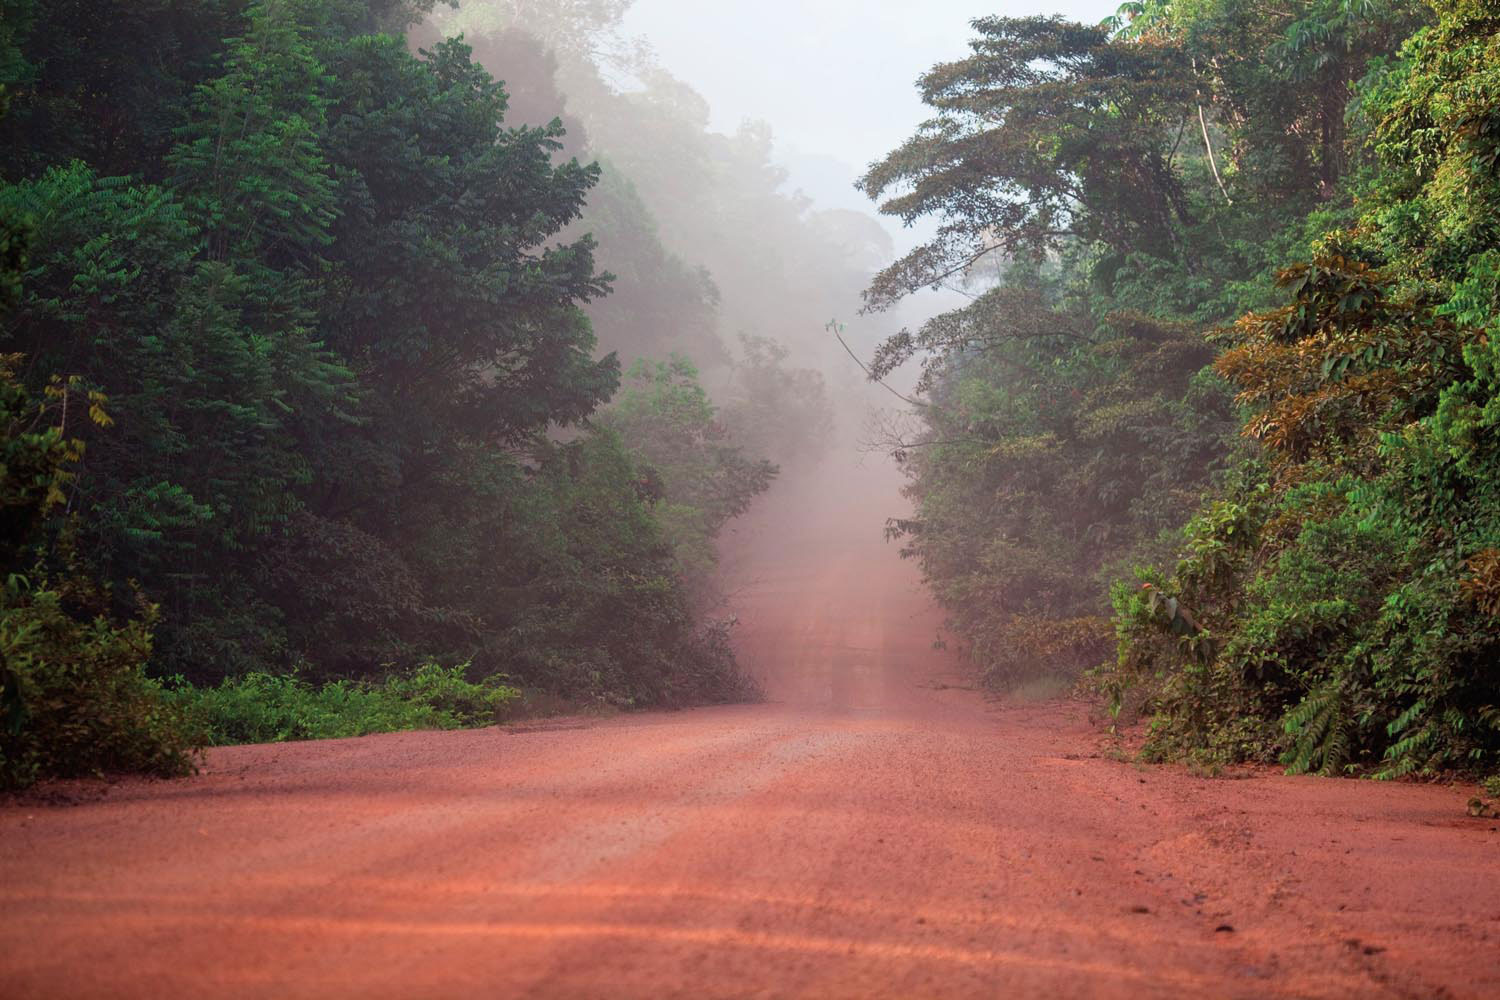 The unpaved Linden-Lethem road cuts through the Iwokrama Forest. Photo by Joe Blosson/Alamy Stock Photo